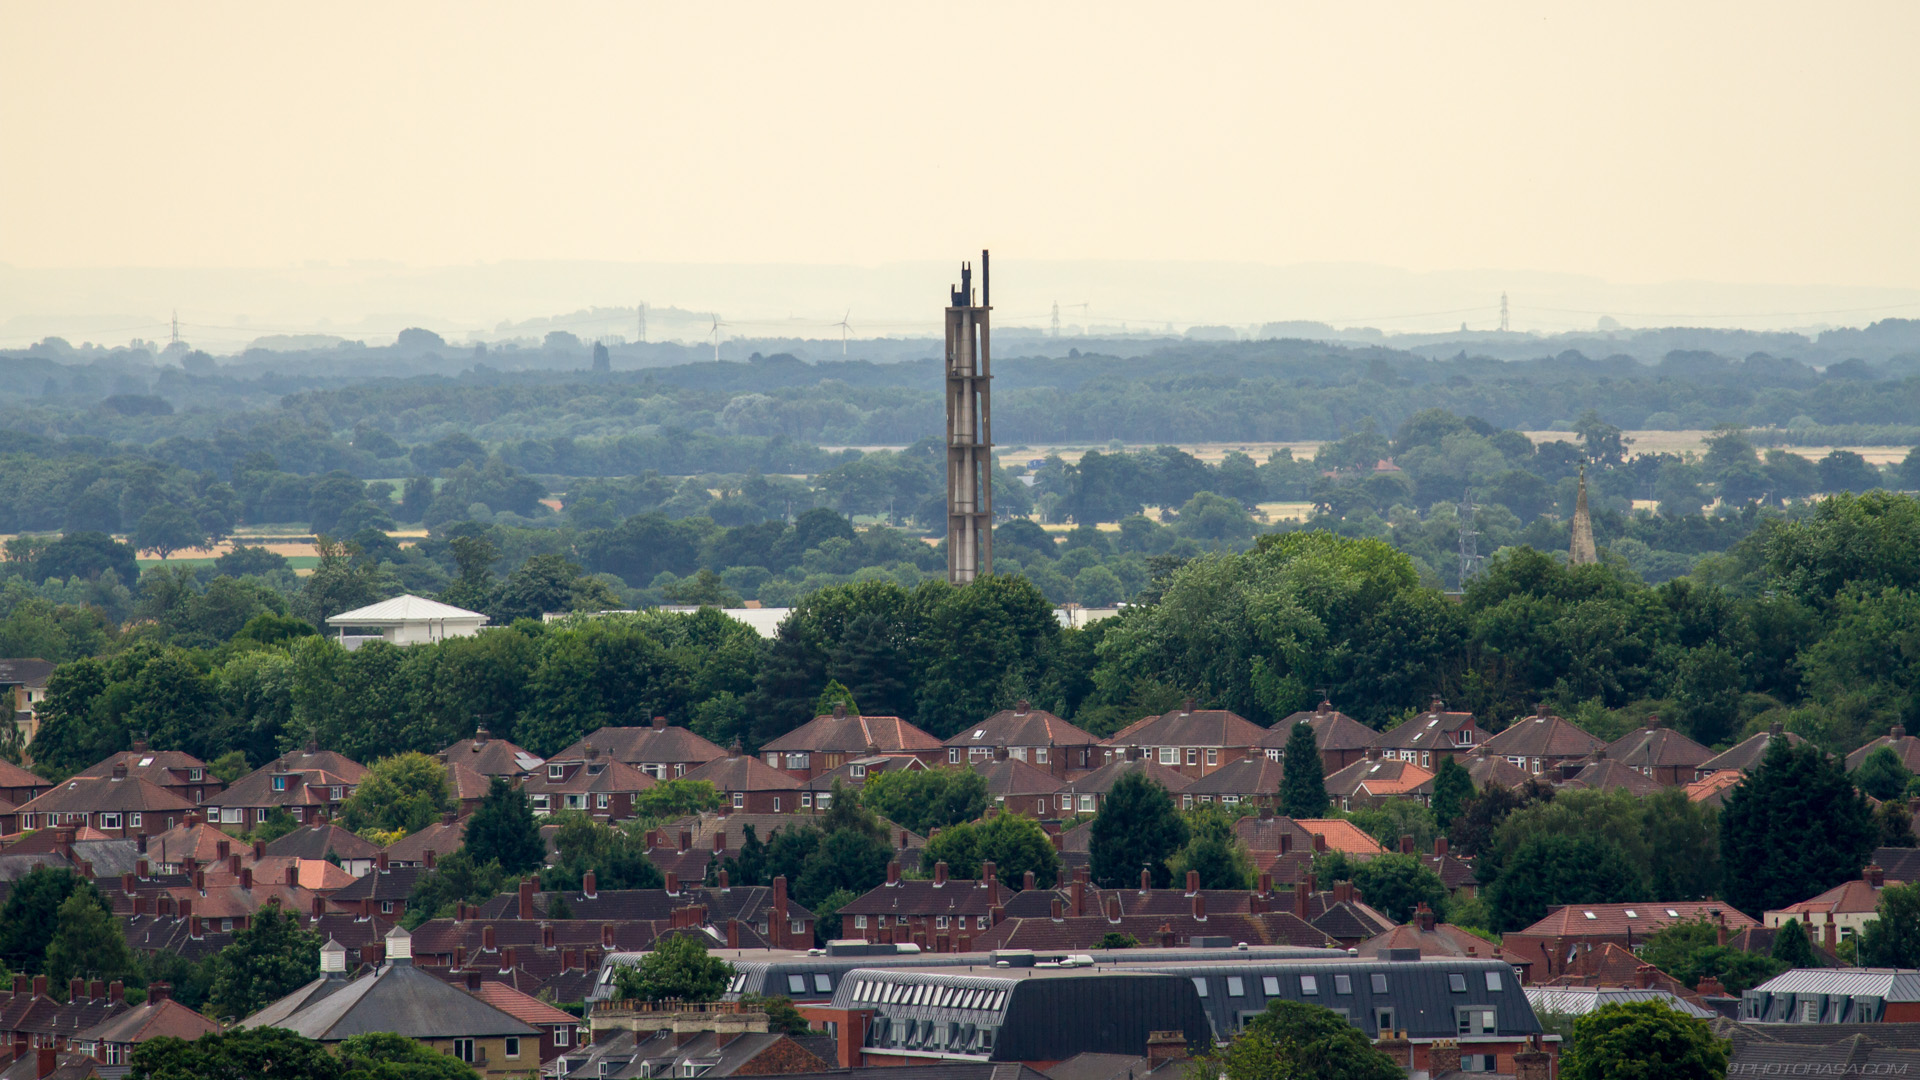 http://photorasa.com/places/yorkminster-cathedral/attachment/industrial-metal-chimney-over-york/